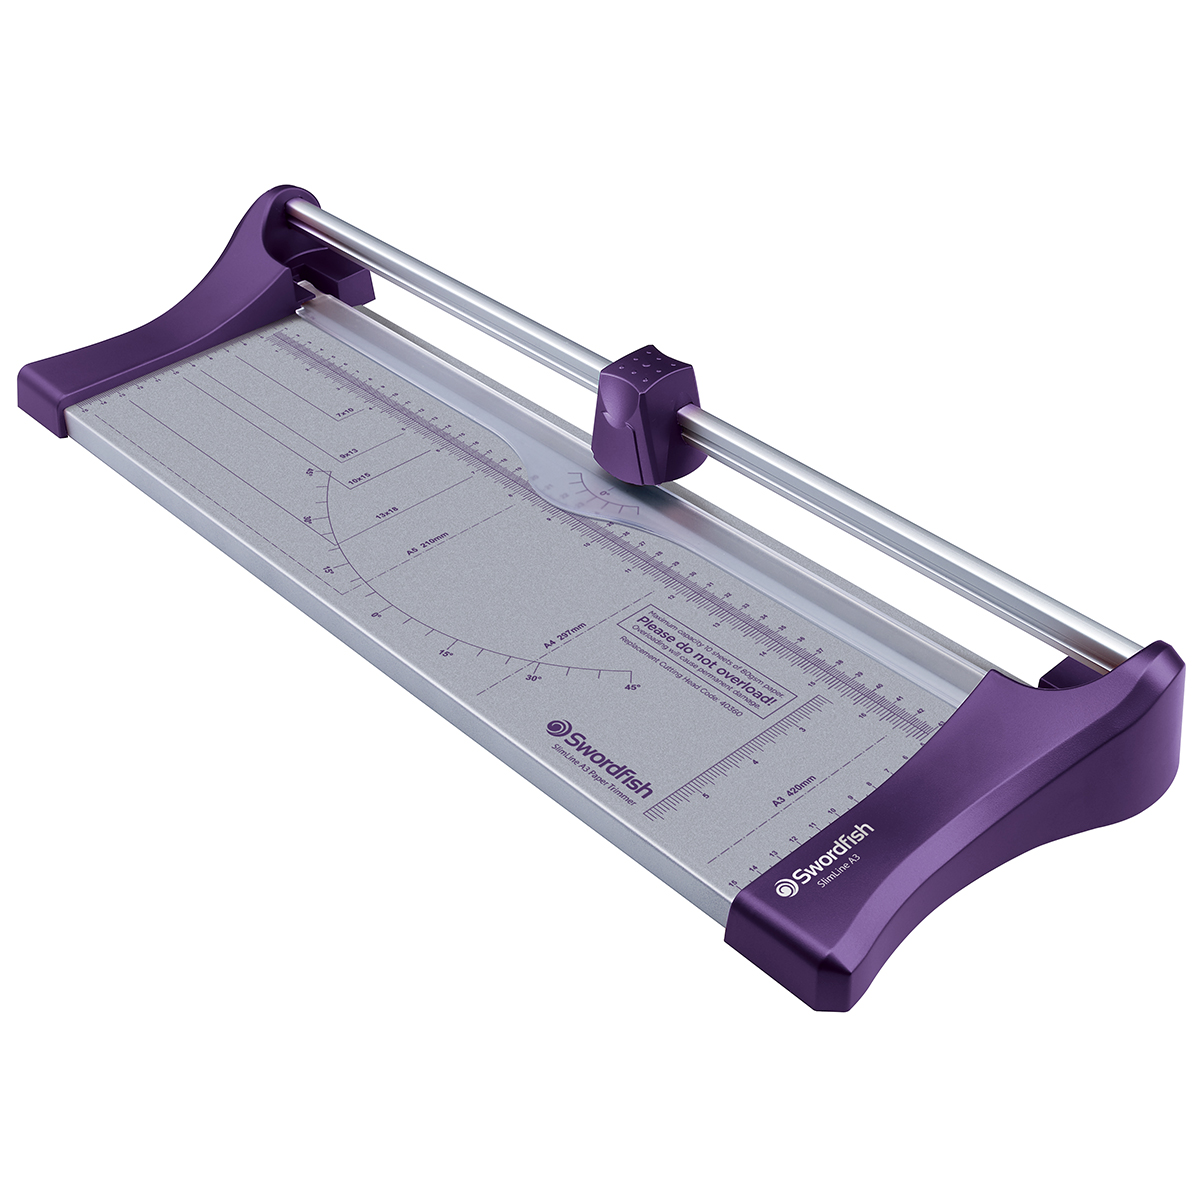 Swordfish Slimline Paper Trimmer A3 Purple